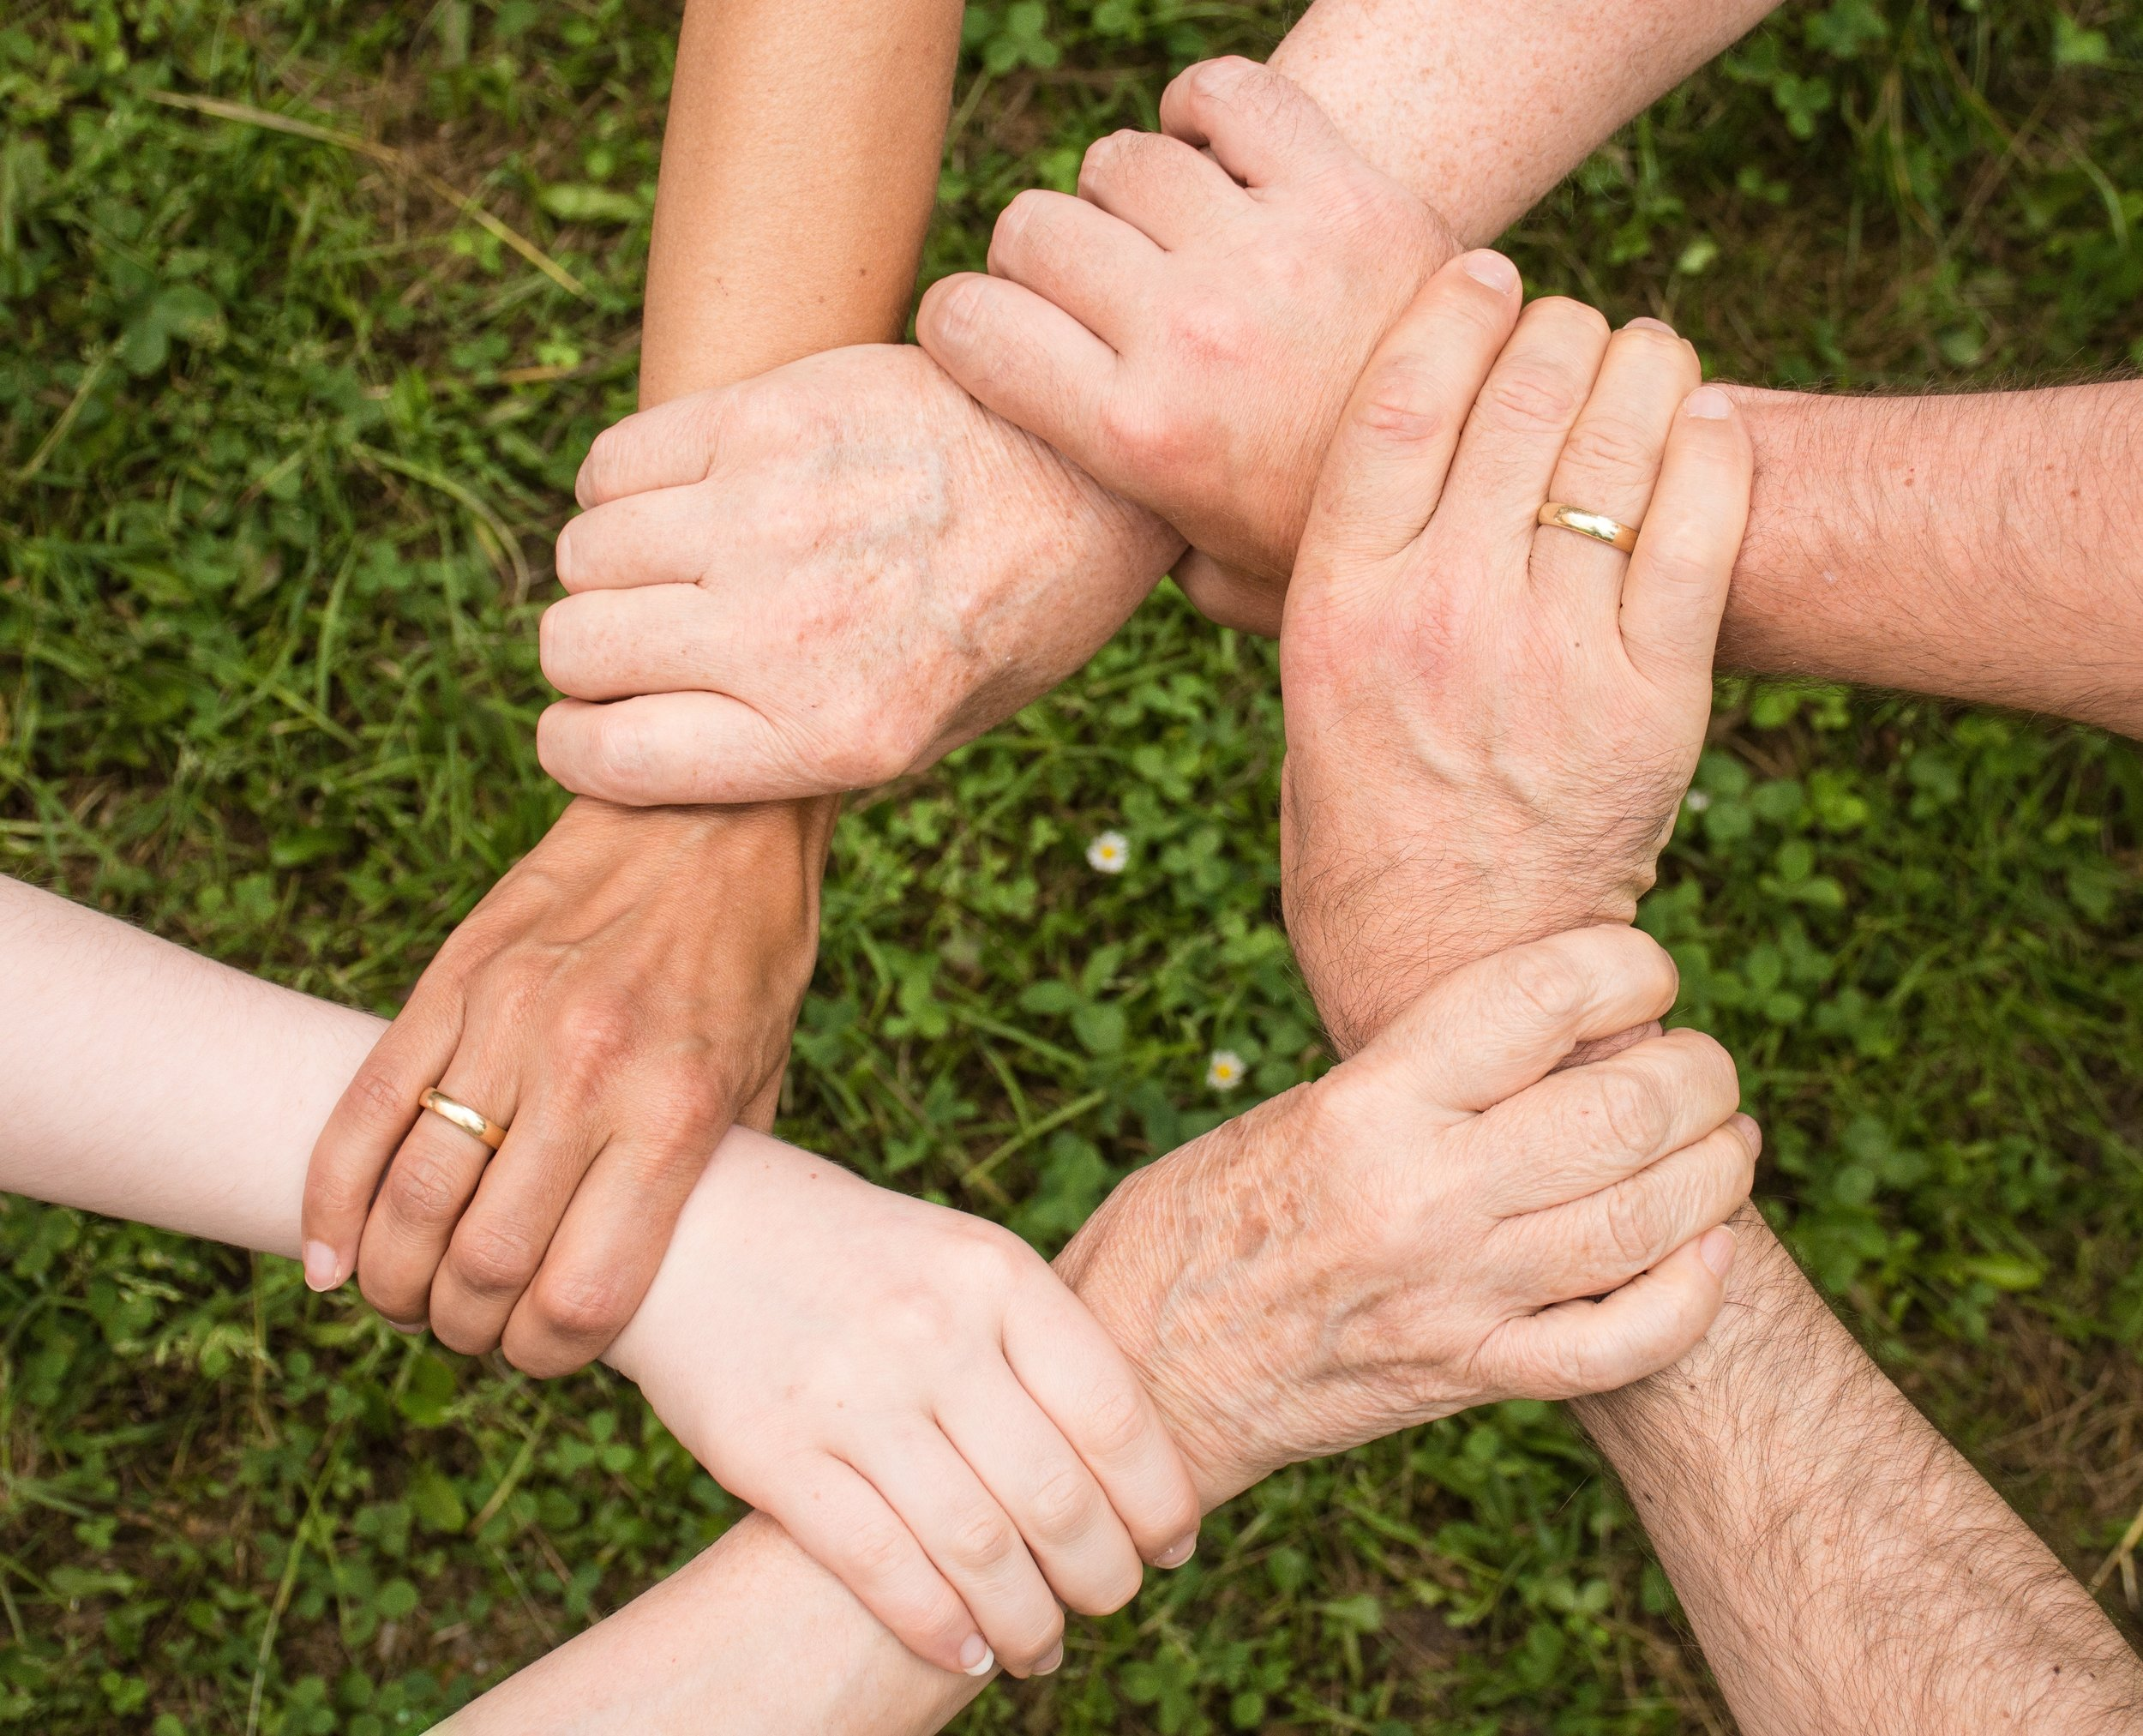 When we come together as a community, we can work together to heal the community.